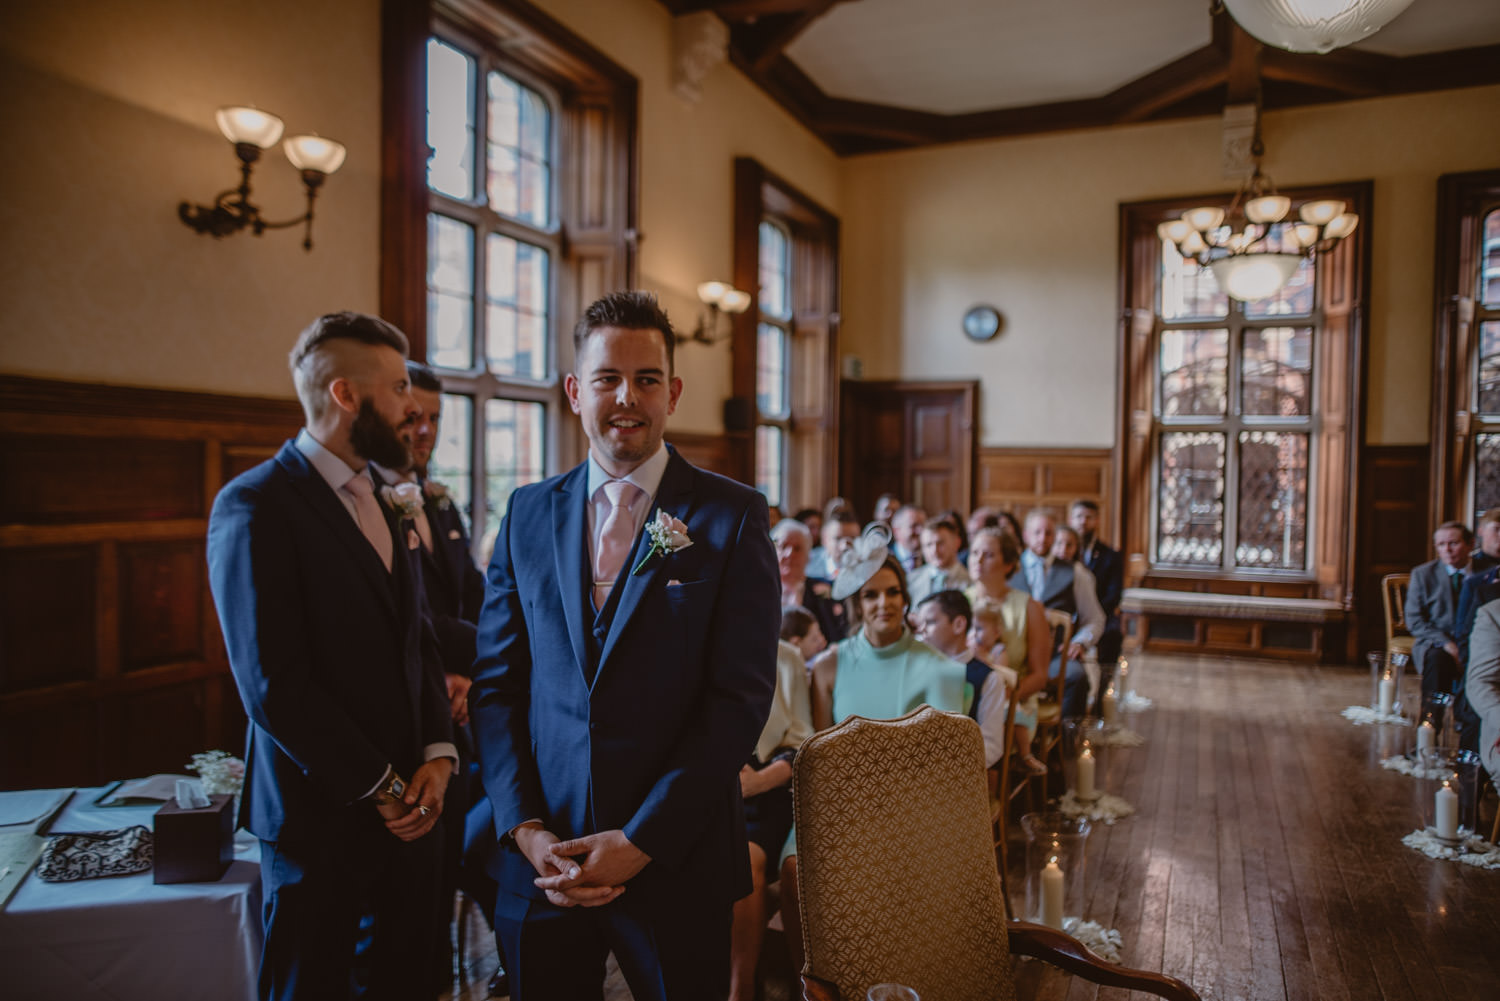 Groom and Best Man waiting for the bride at The Elvetham Hotel